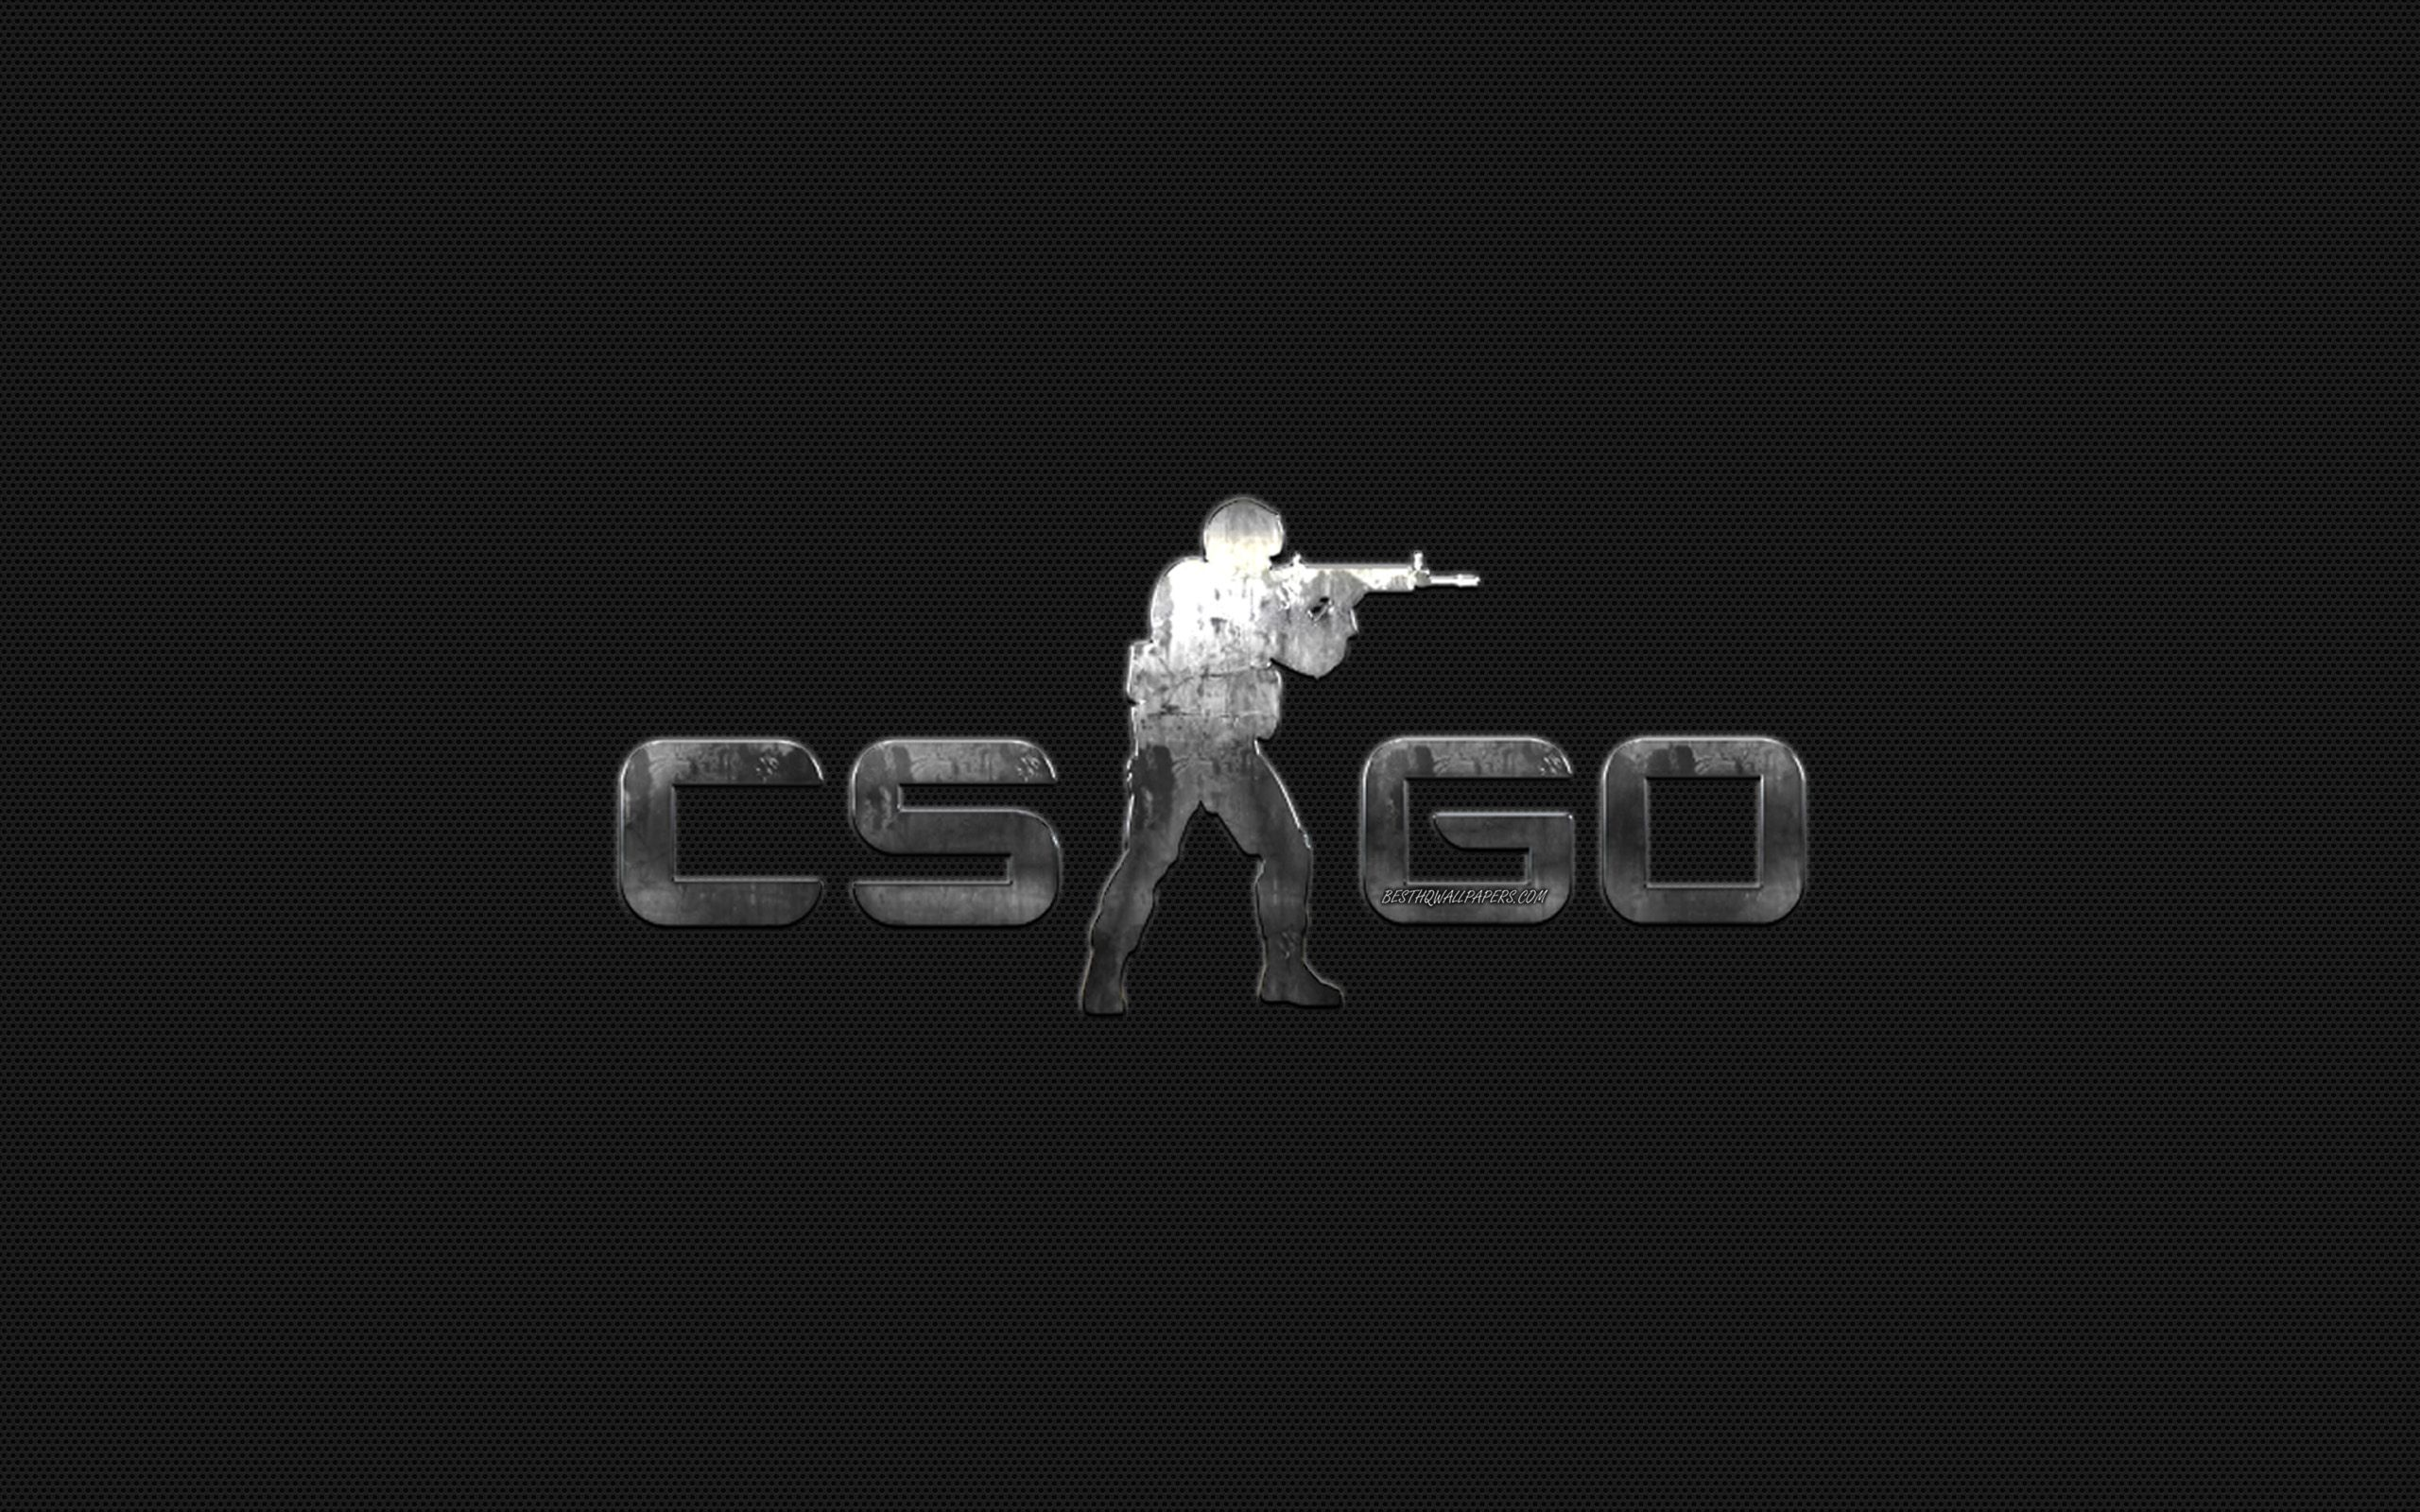 2560x1600 Download wallpapers CS GO, Counter-Strike, Global Offensive ...